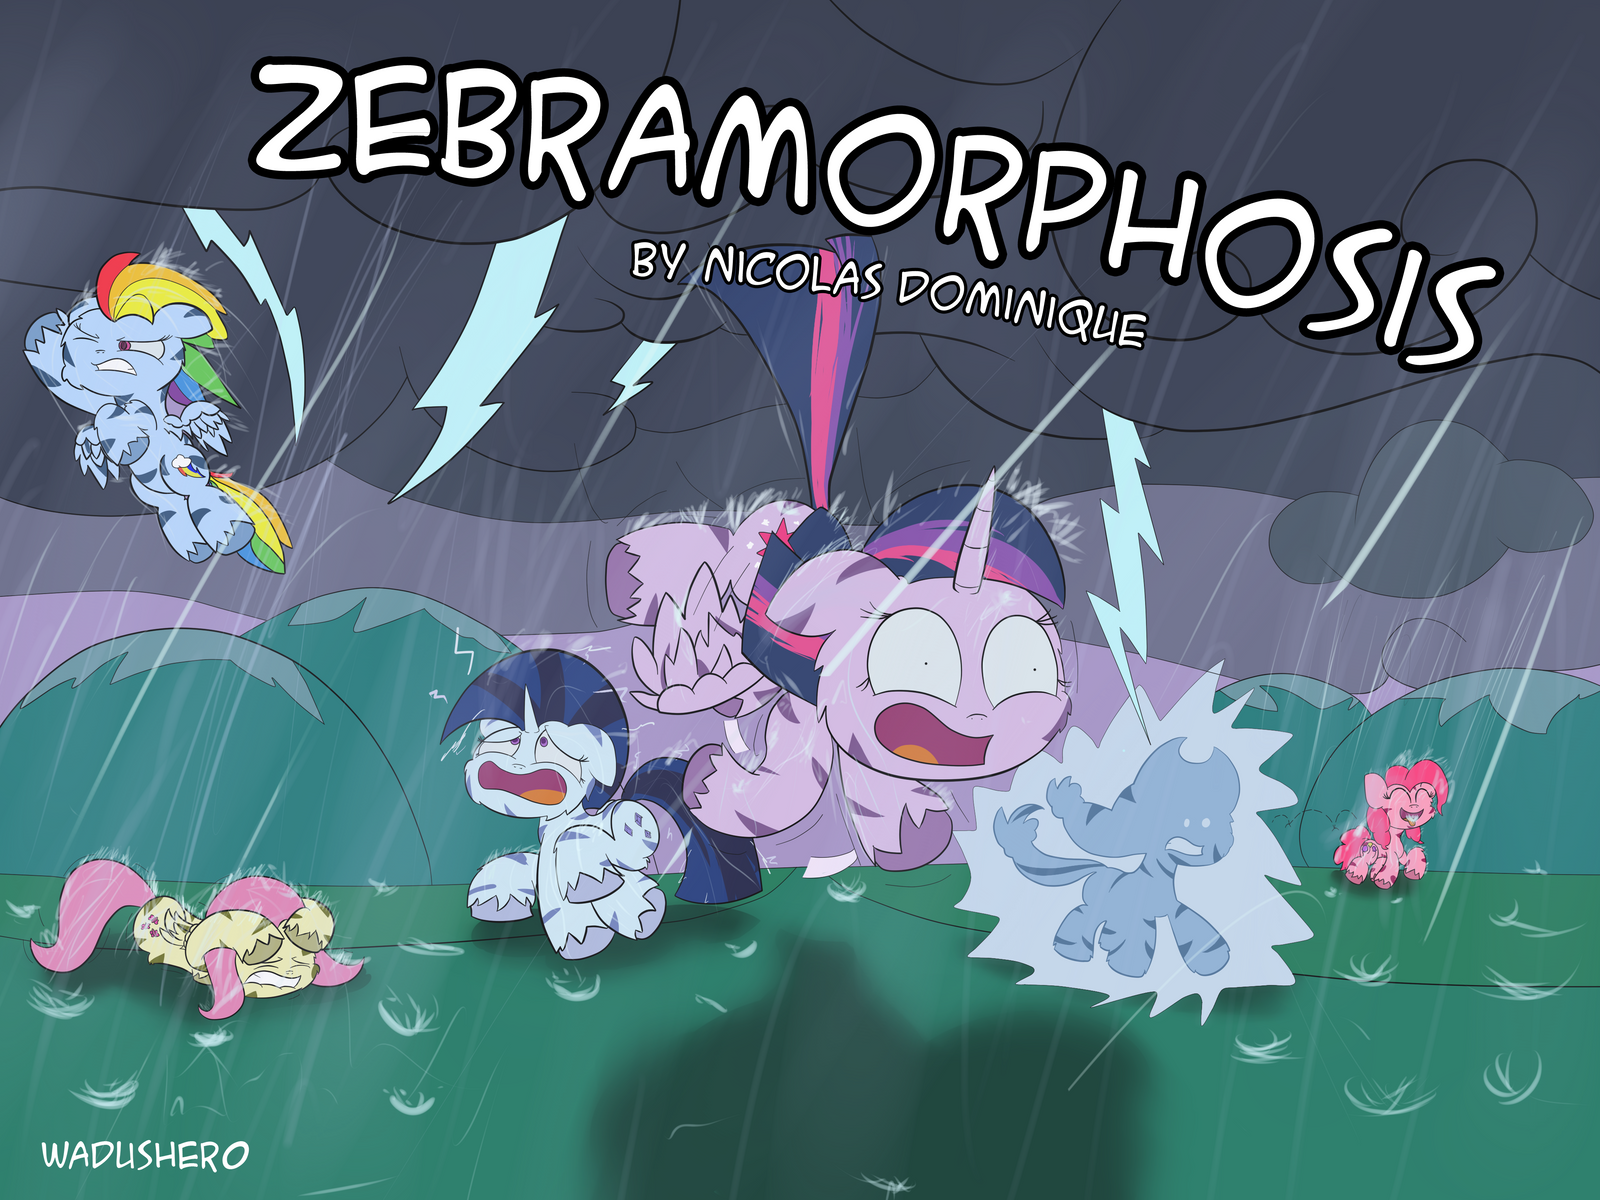 Zebramorphosis Cover by Wadusher0